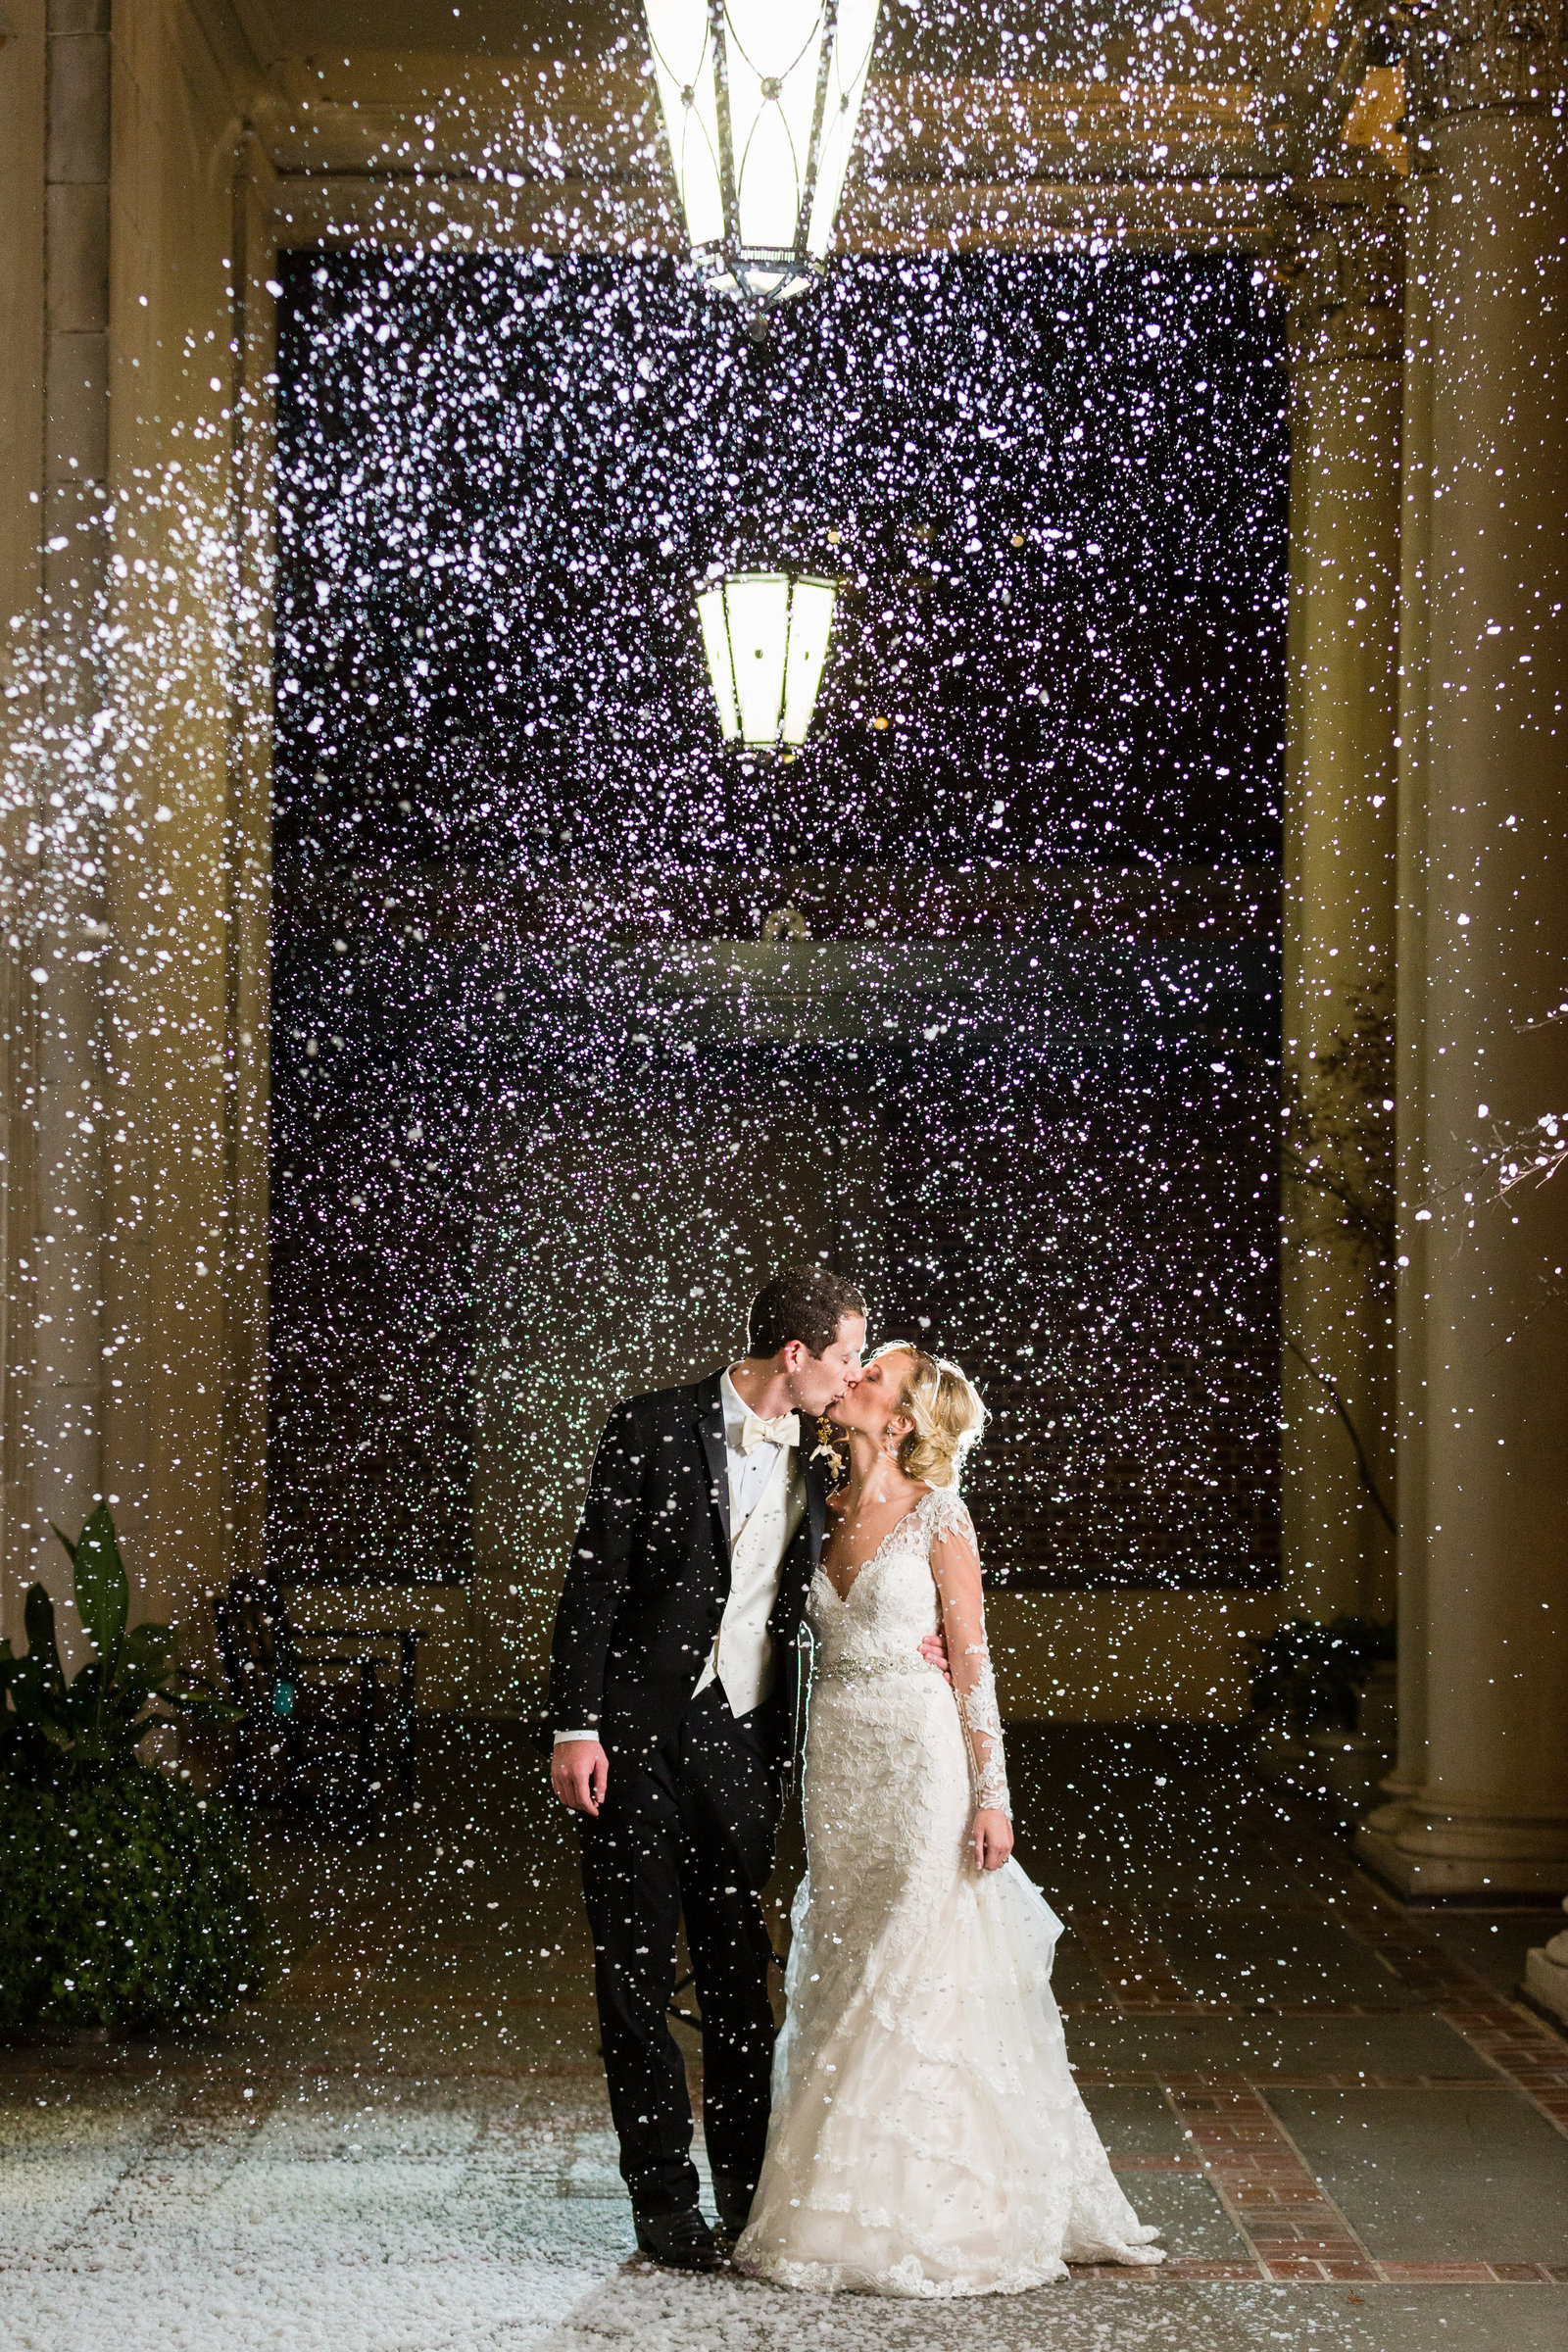 snow-machine-for-wedding-exit